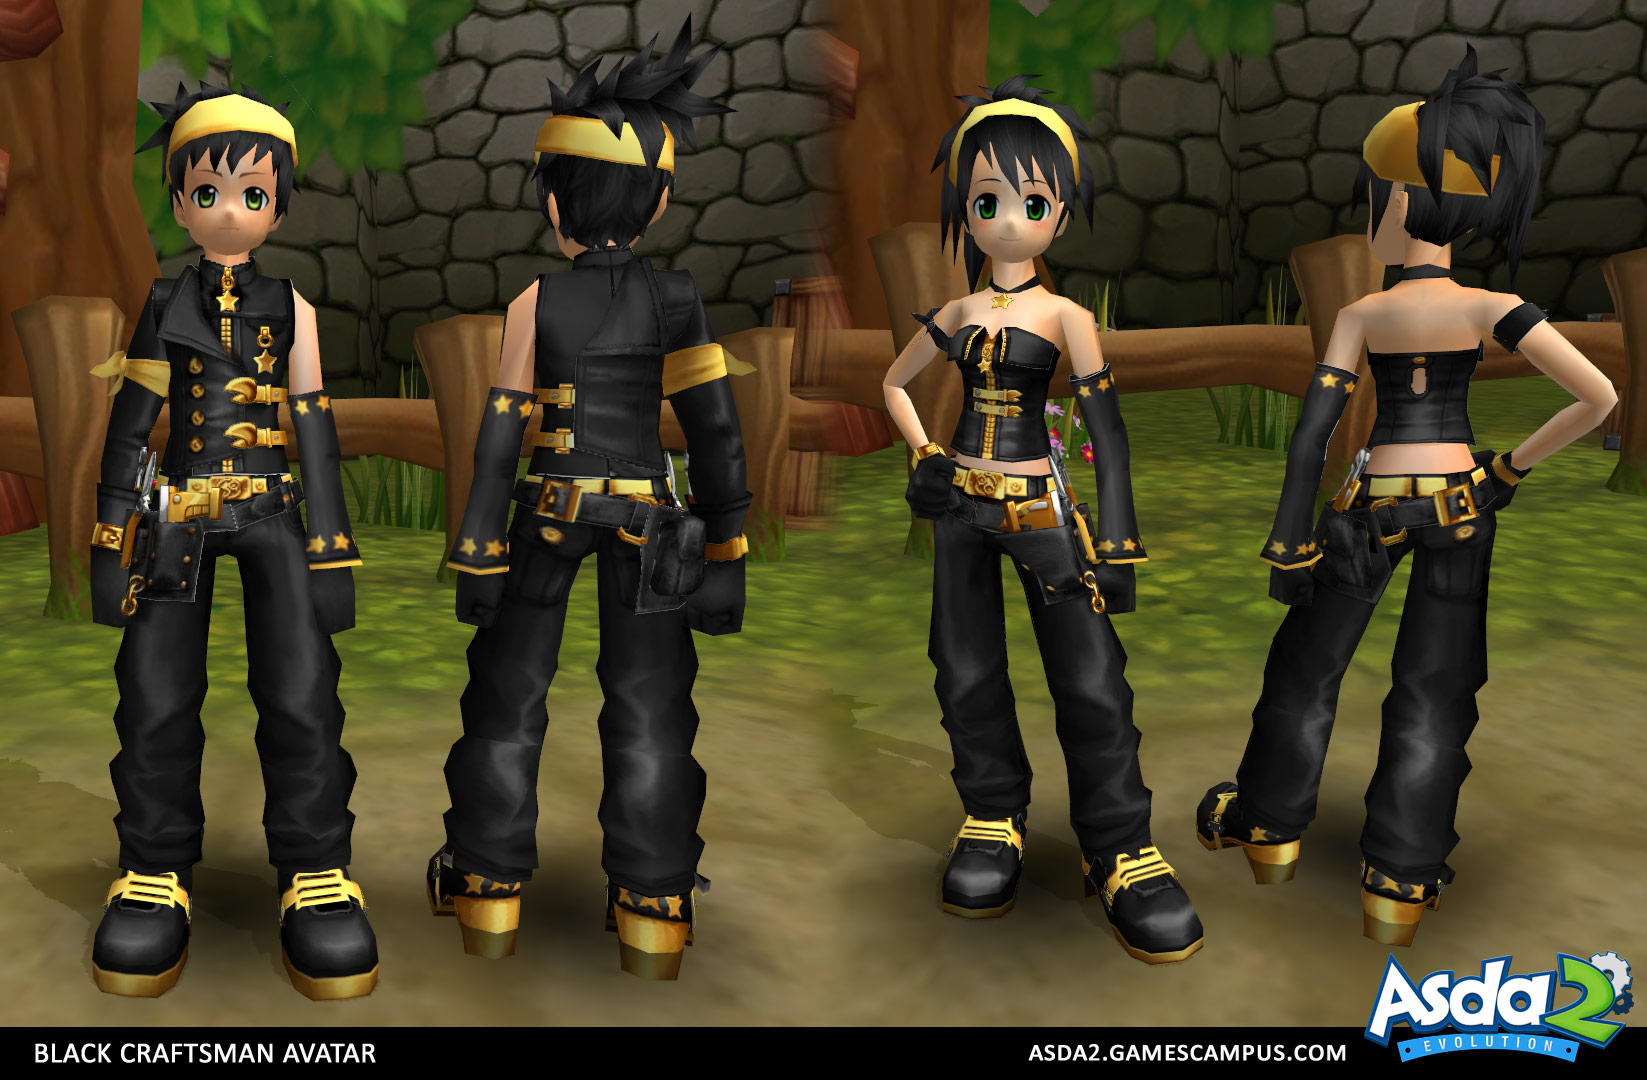 Best Anime MMORPG - Asda 2 - Black Craftsman Set